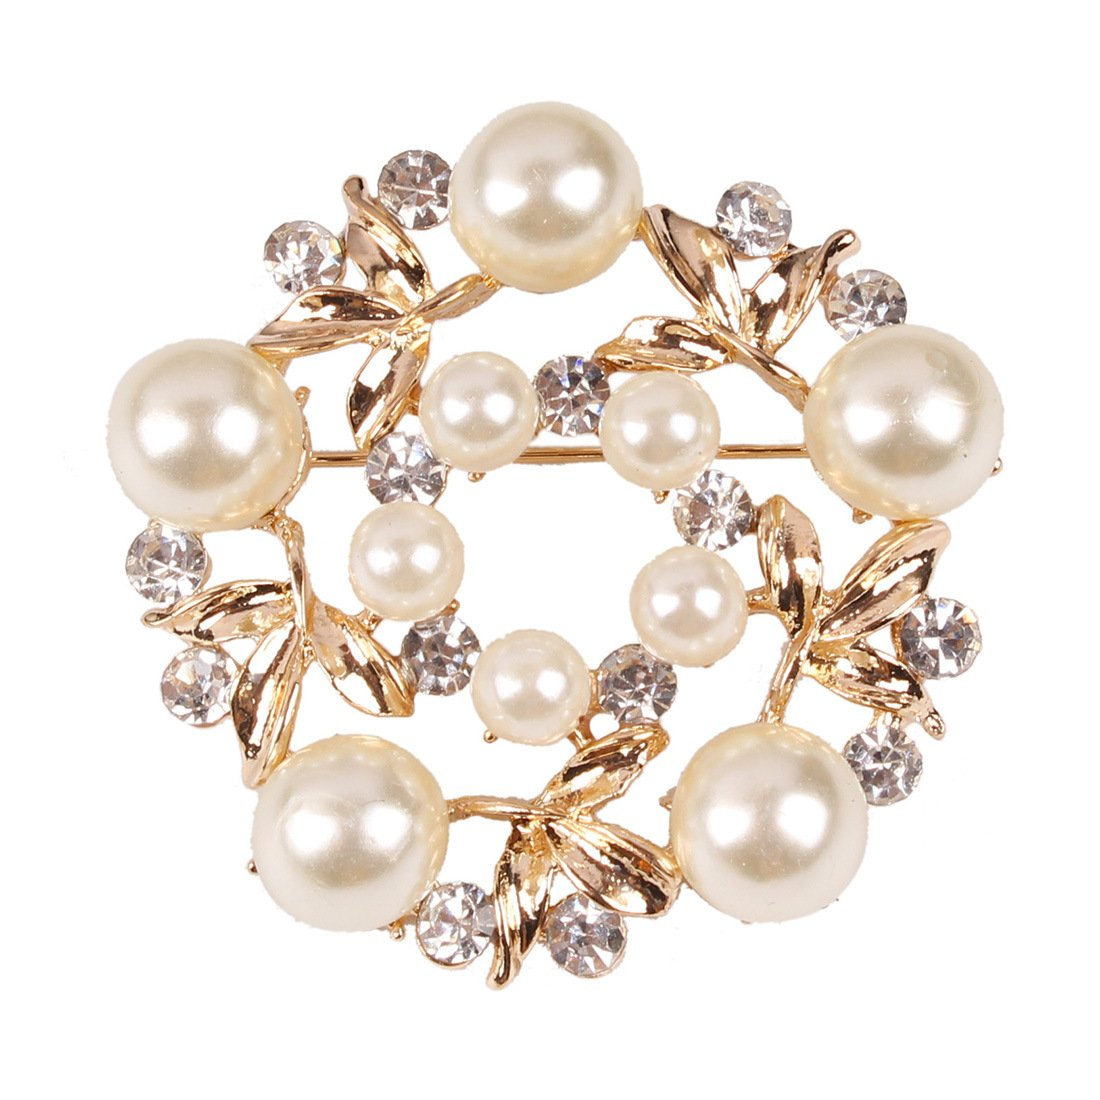 YiYi Operation Gold Crystal Pearl Brooches Pins Wreath Bridal YiYi Operation Manufacturer NO.182